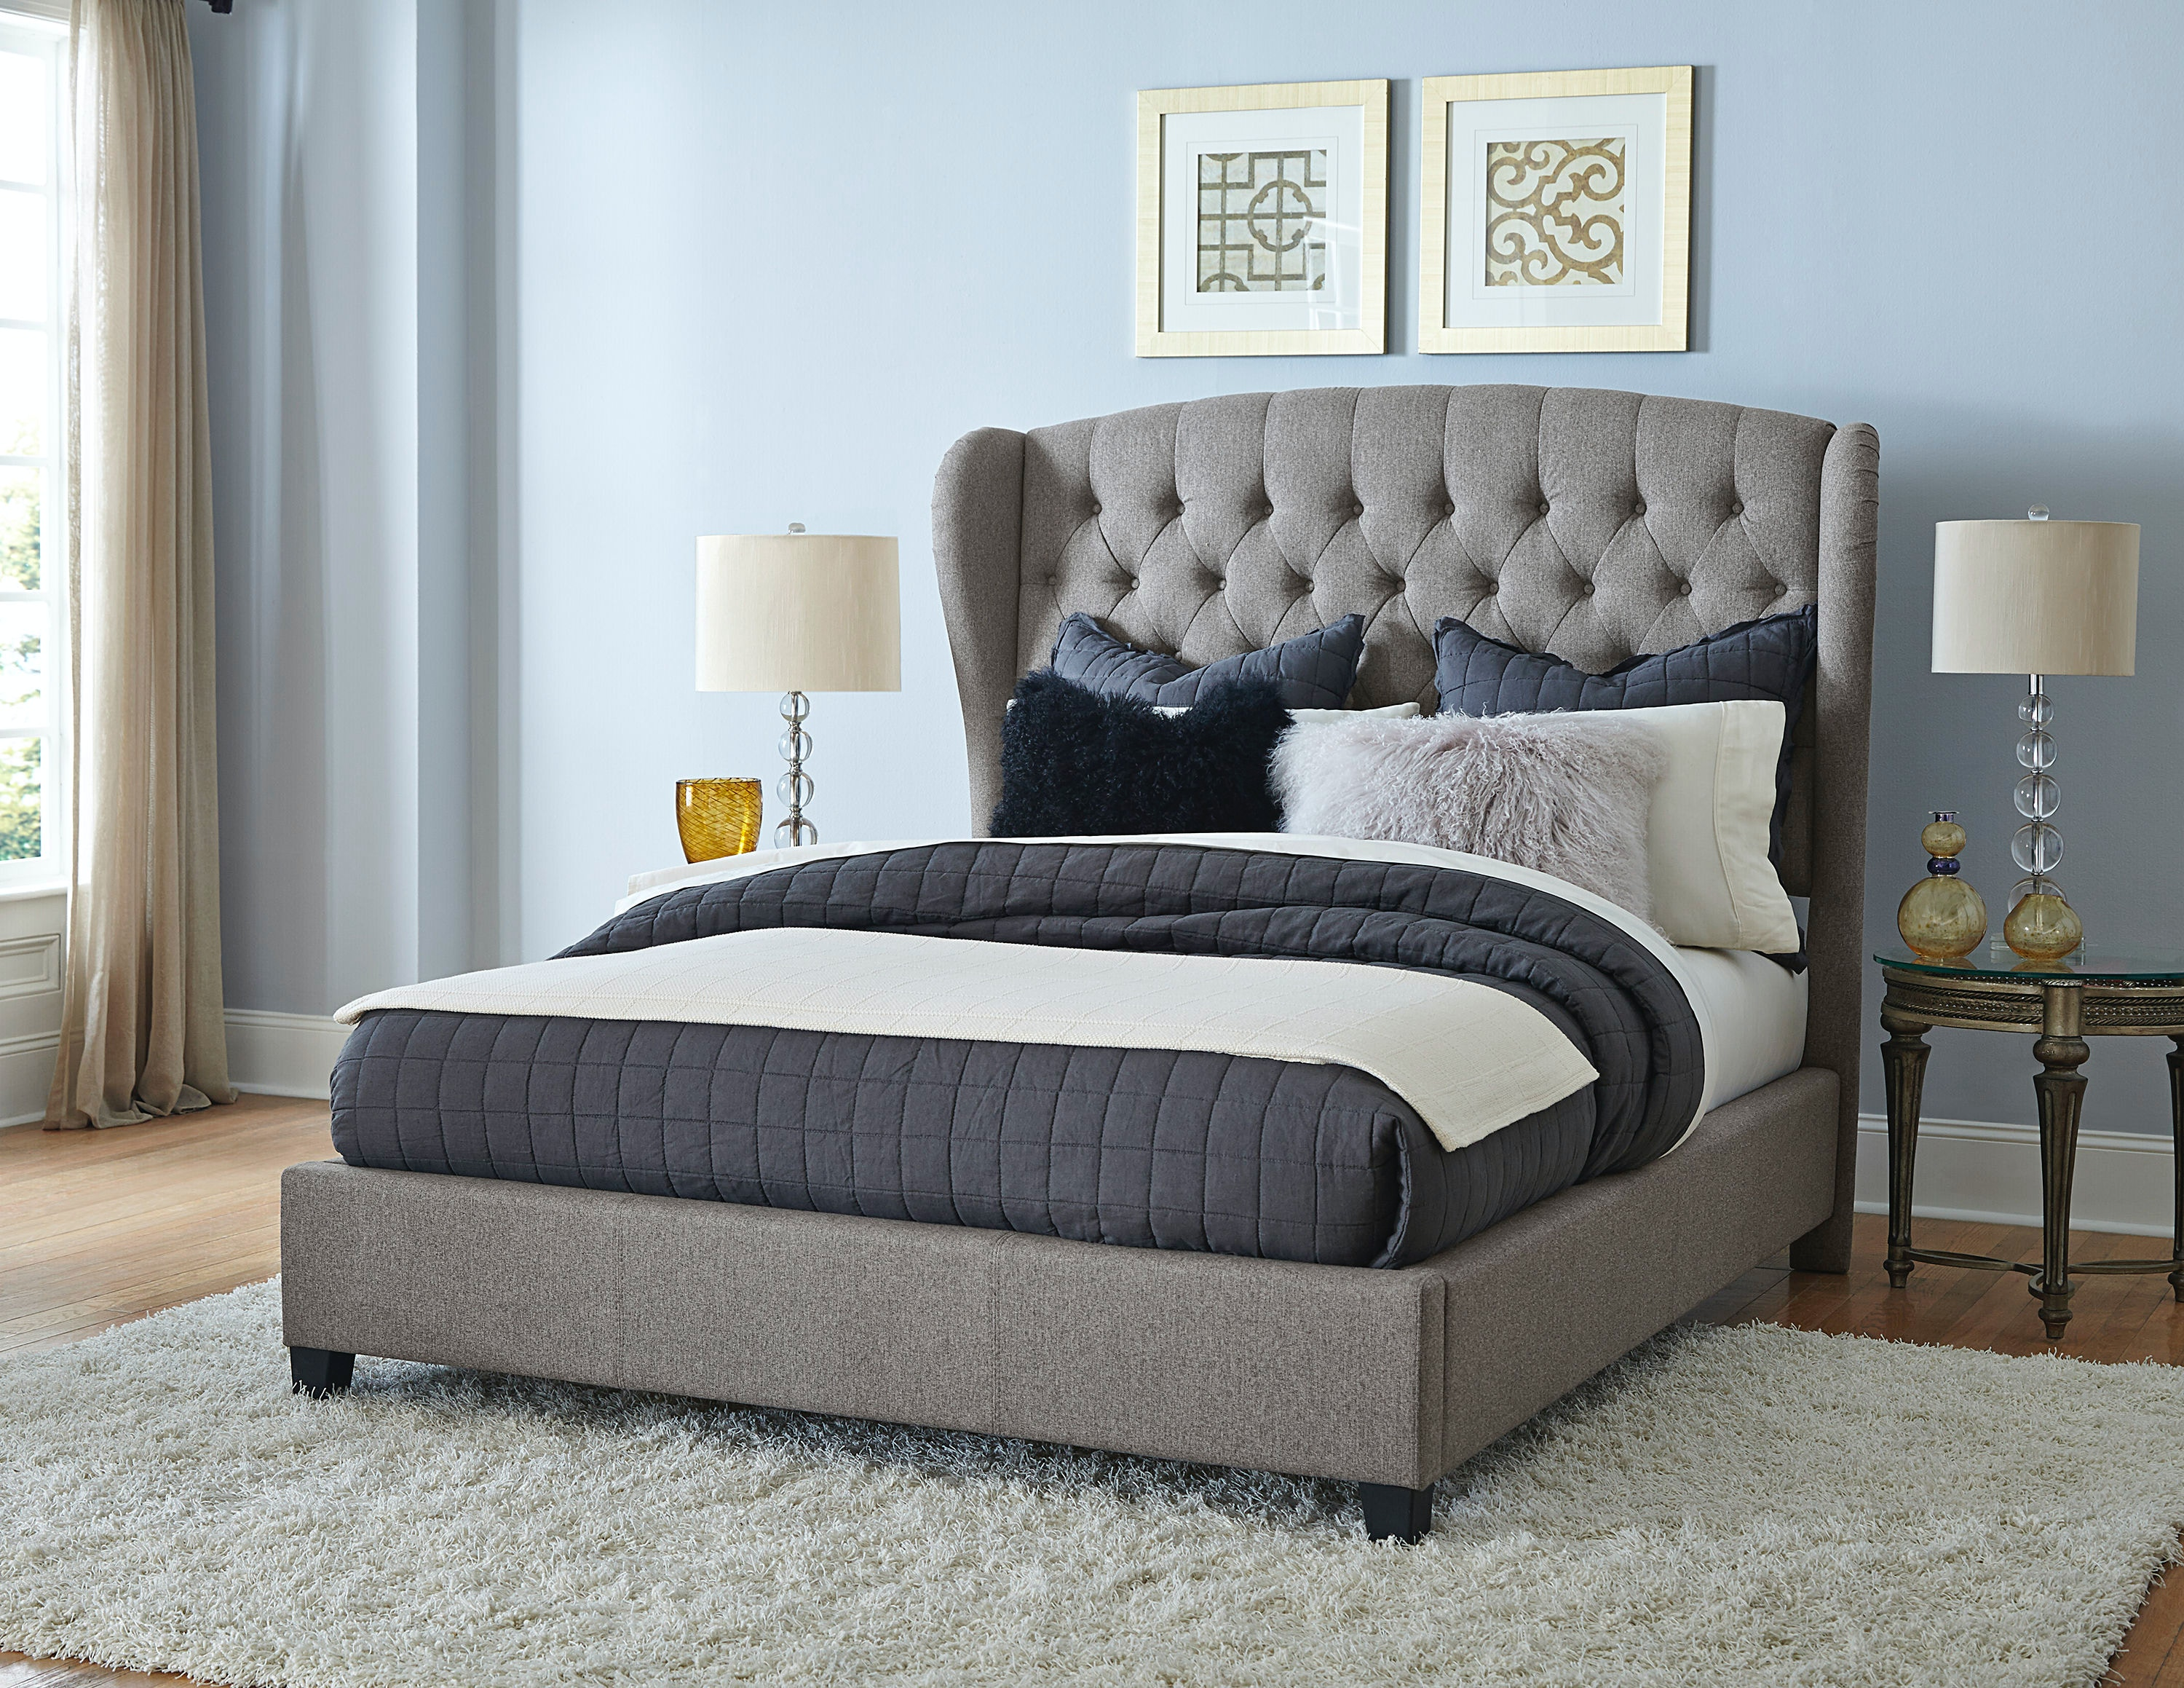 Hillsdale Furniture Bedroom Bromley Headboard And Footboard Queen